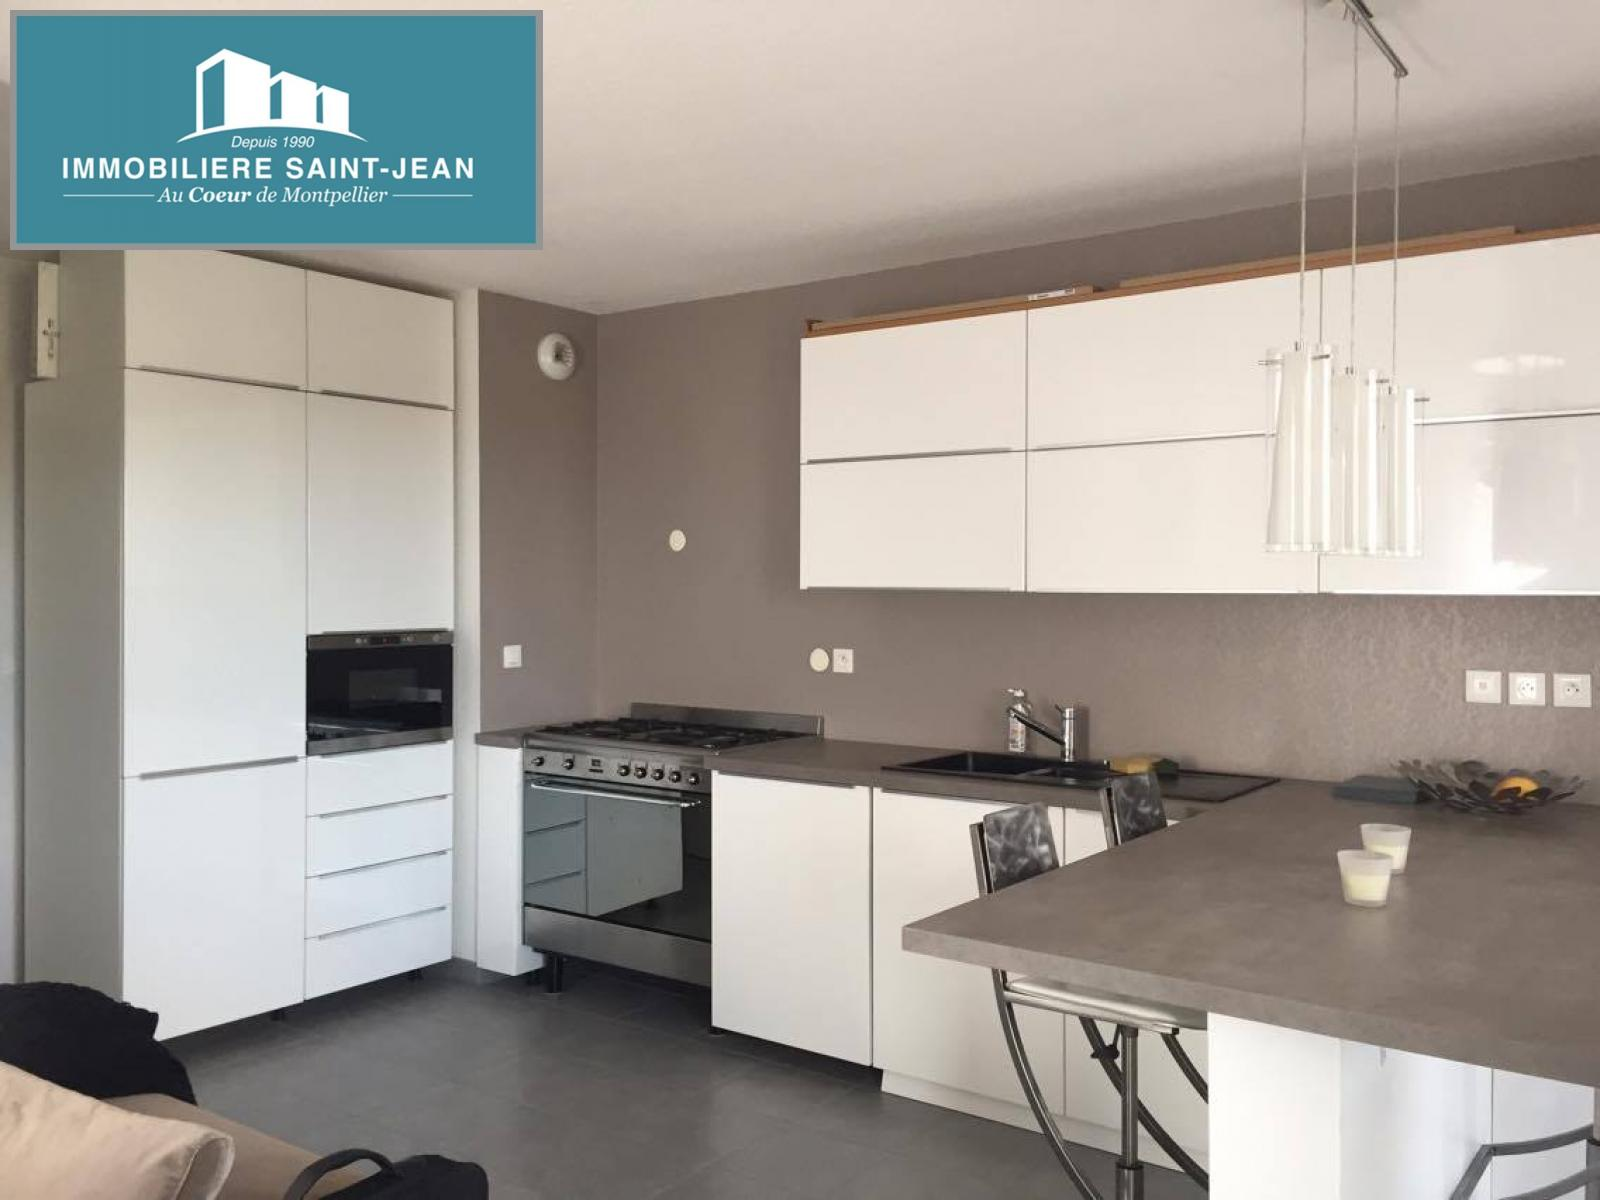 Annonce vente appartement montpellier 34070 66 m 199 for Annonce vente appartement